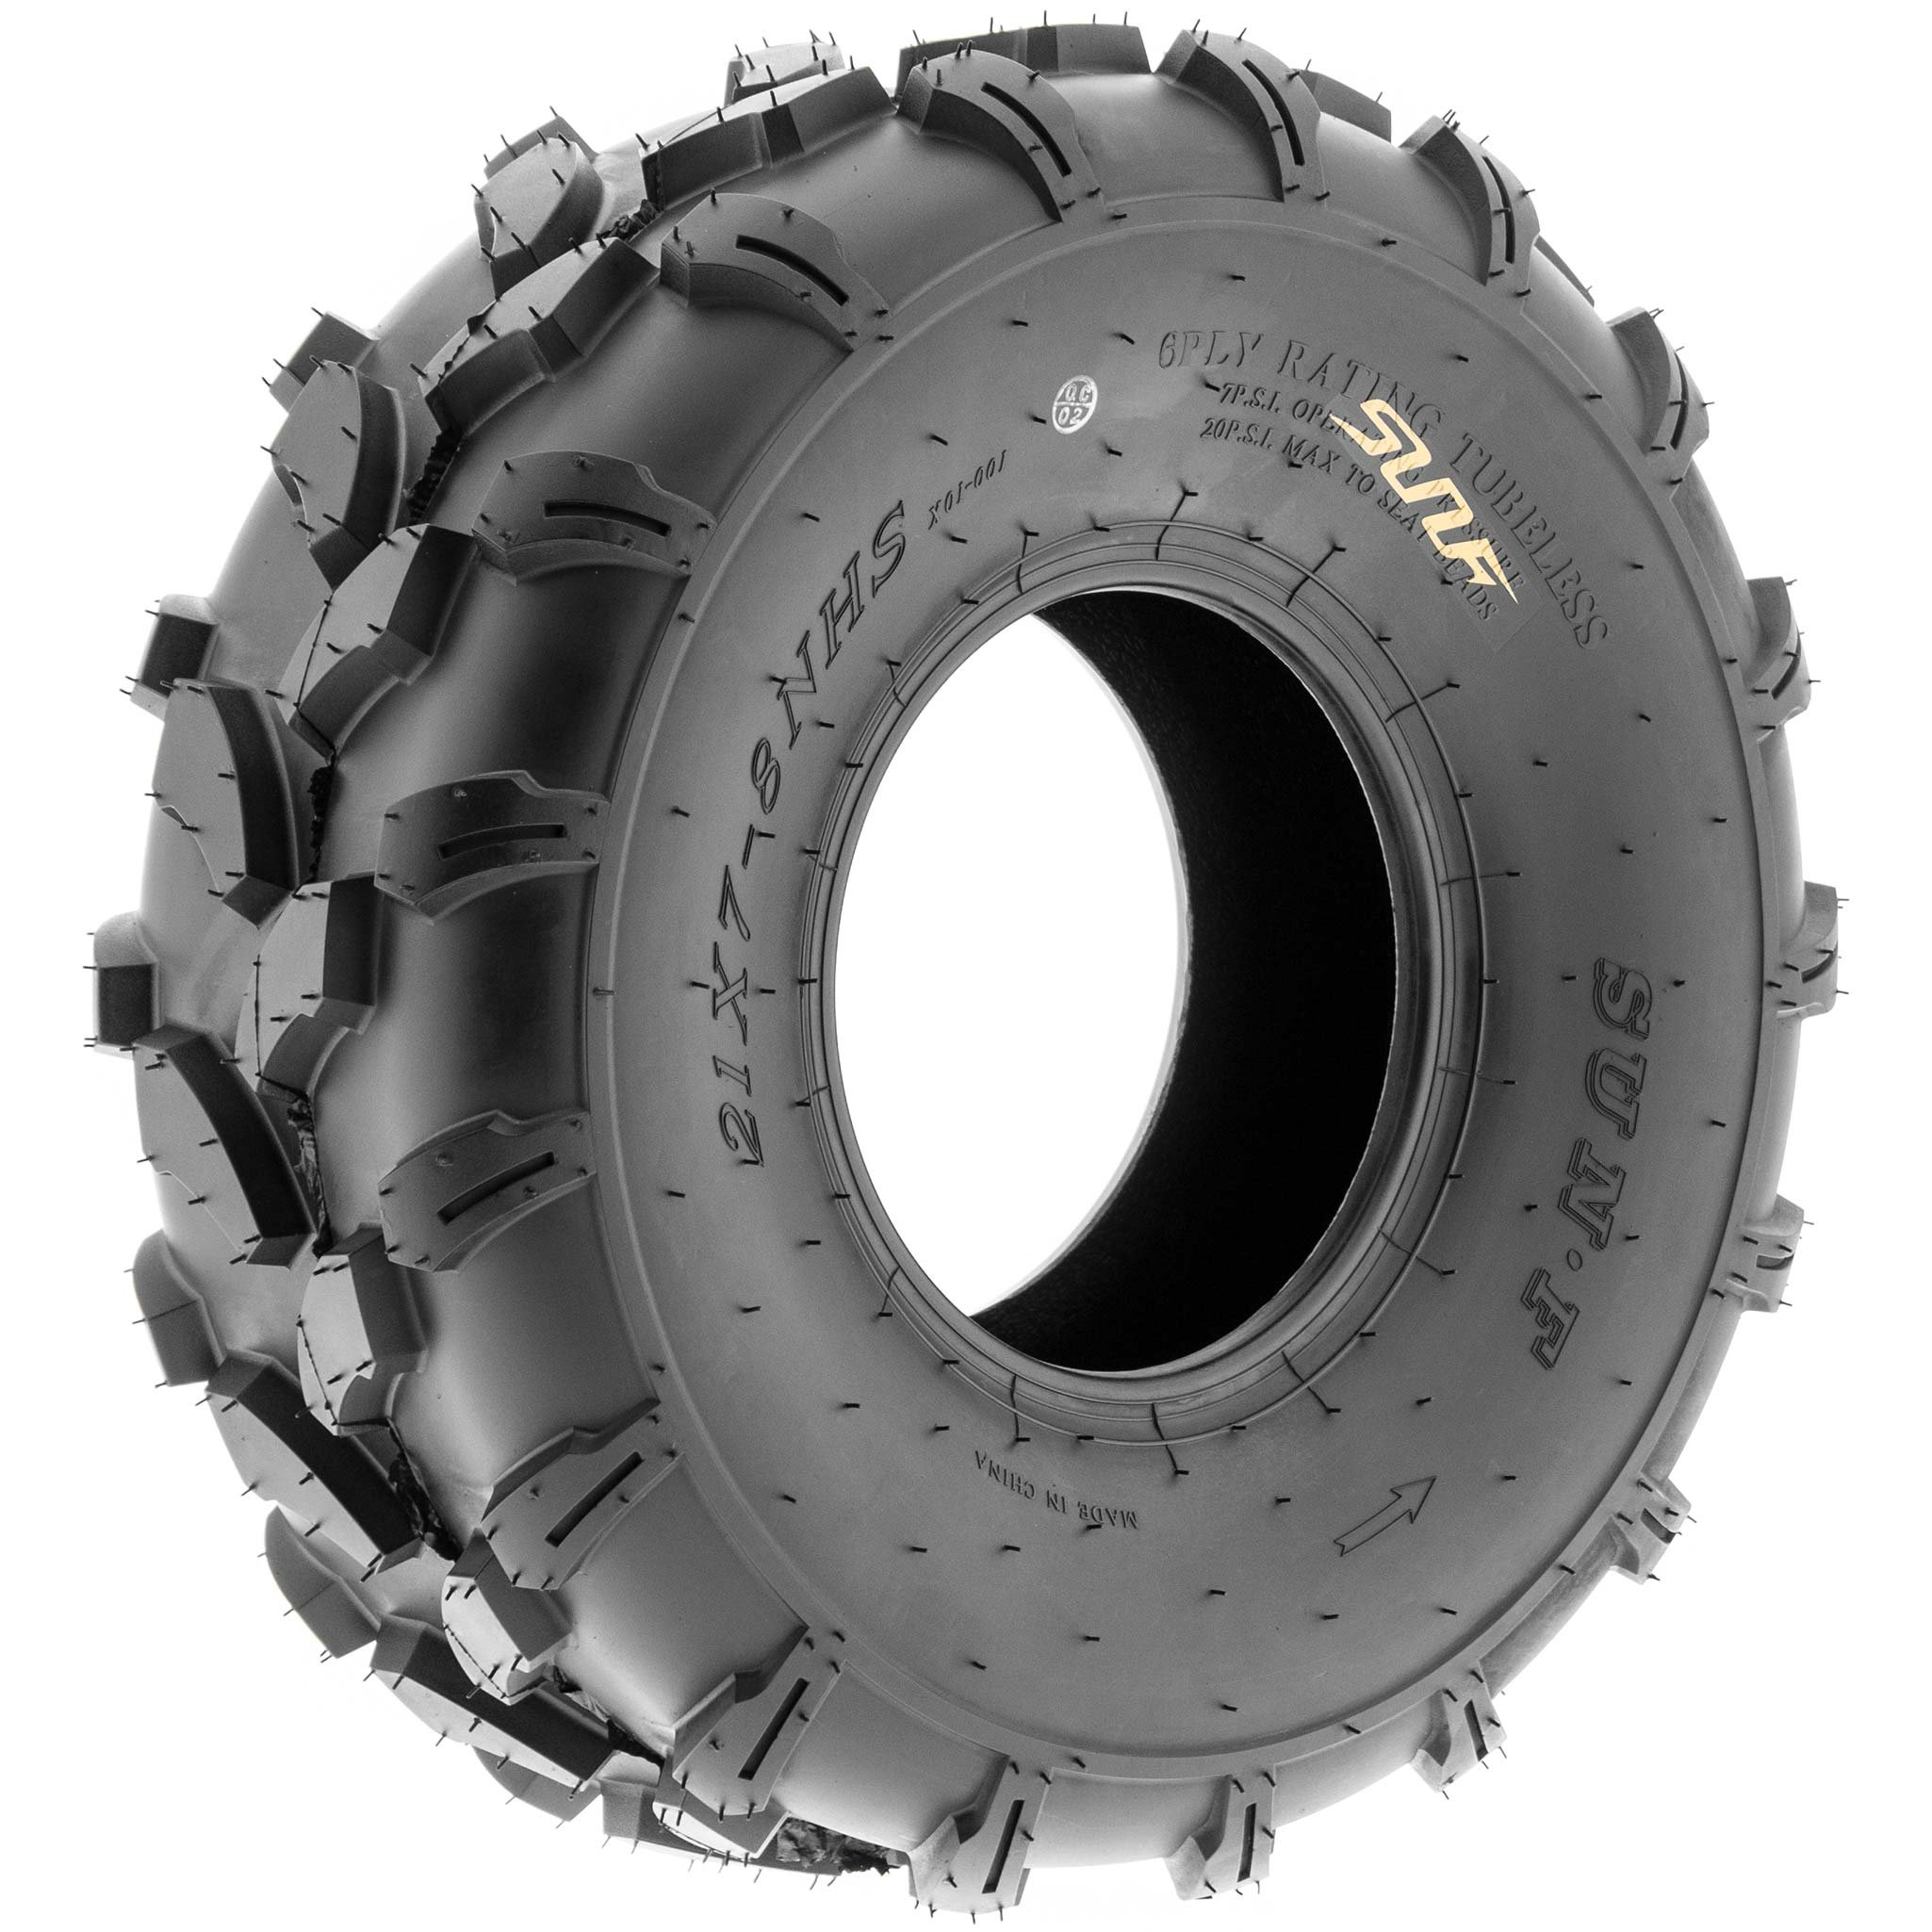 SunF 19x7-8 19x7x8 ATV UTV All Terrain Trail Replacement 6 PR Tubeless Tires A003, [Set of 2] by SUNF (Image #9)